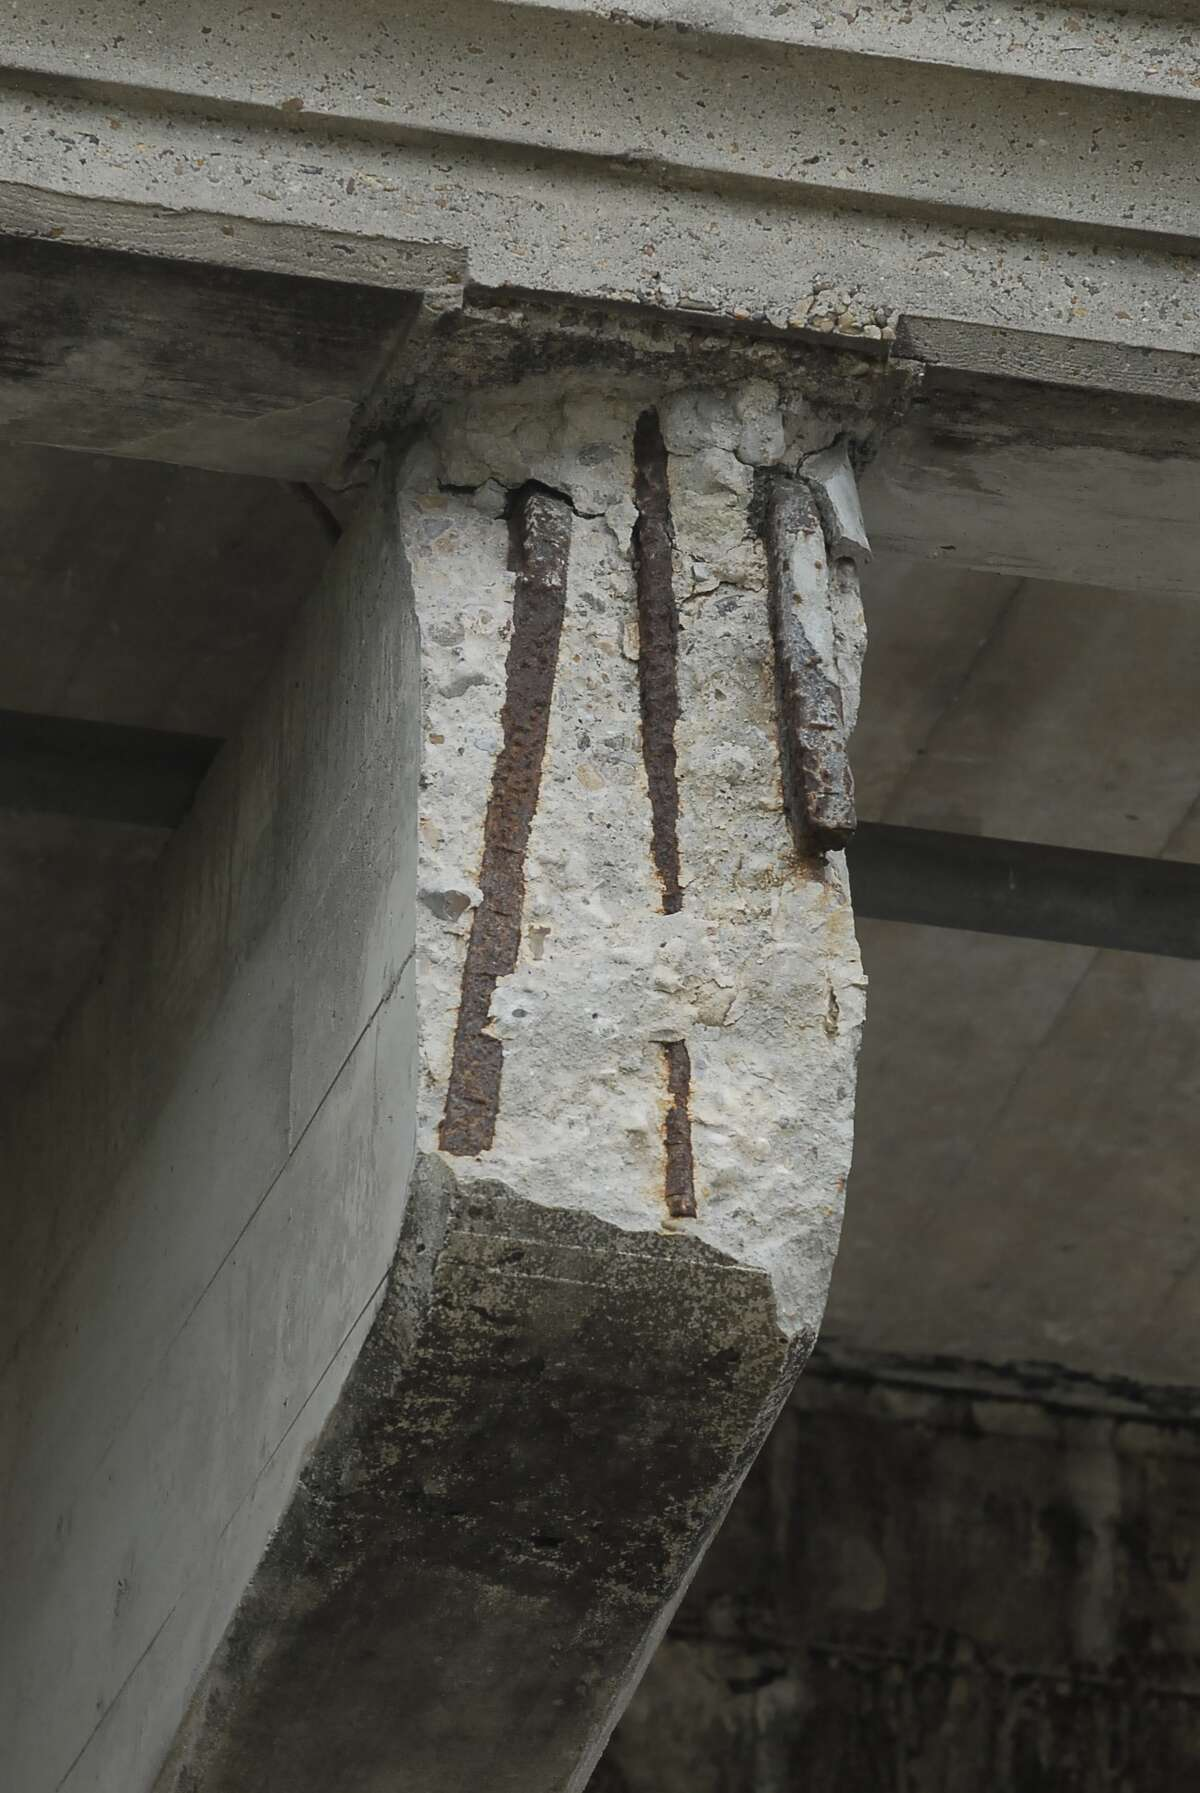 The Yale Street Bridge (built in 1931) at Interstate 10 over White Oak bayou and deteriorating concrete support structures exposing metal rebar photographed Sunday 3/18/12. Photo by Tony Bullard.